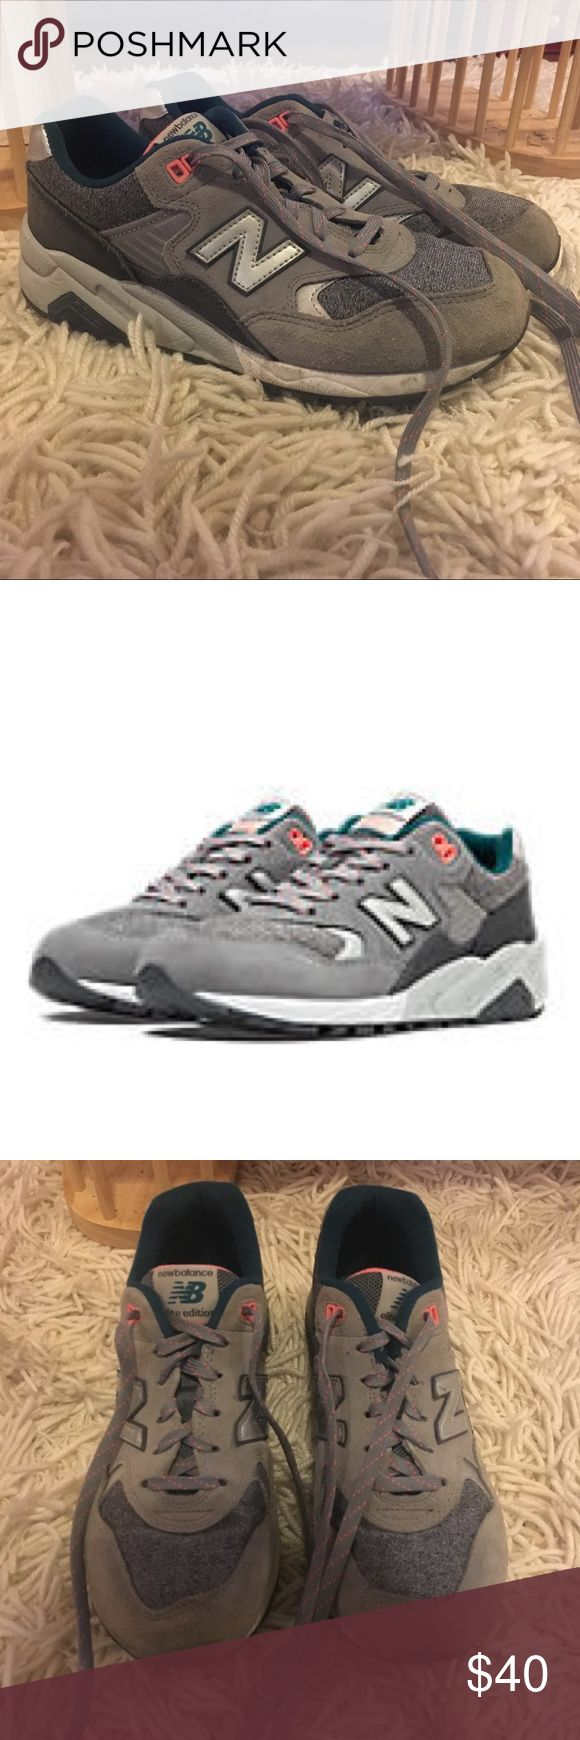 Women's 580 New Balance- Steel Grey w Pink & Teal Discontinued color! They're in awesome condition and were pretty minimally worn. Feel free to ask any questions. Make me an offer, but I will have to pay extra for shipping so be mindful of that as you come up with a price. New Balance Shoes Athletic Shoes